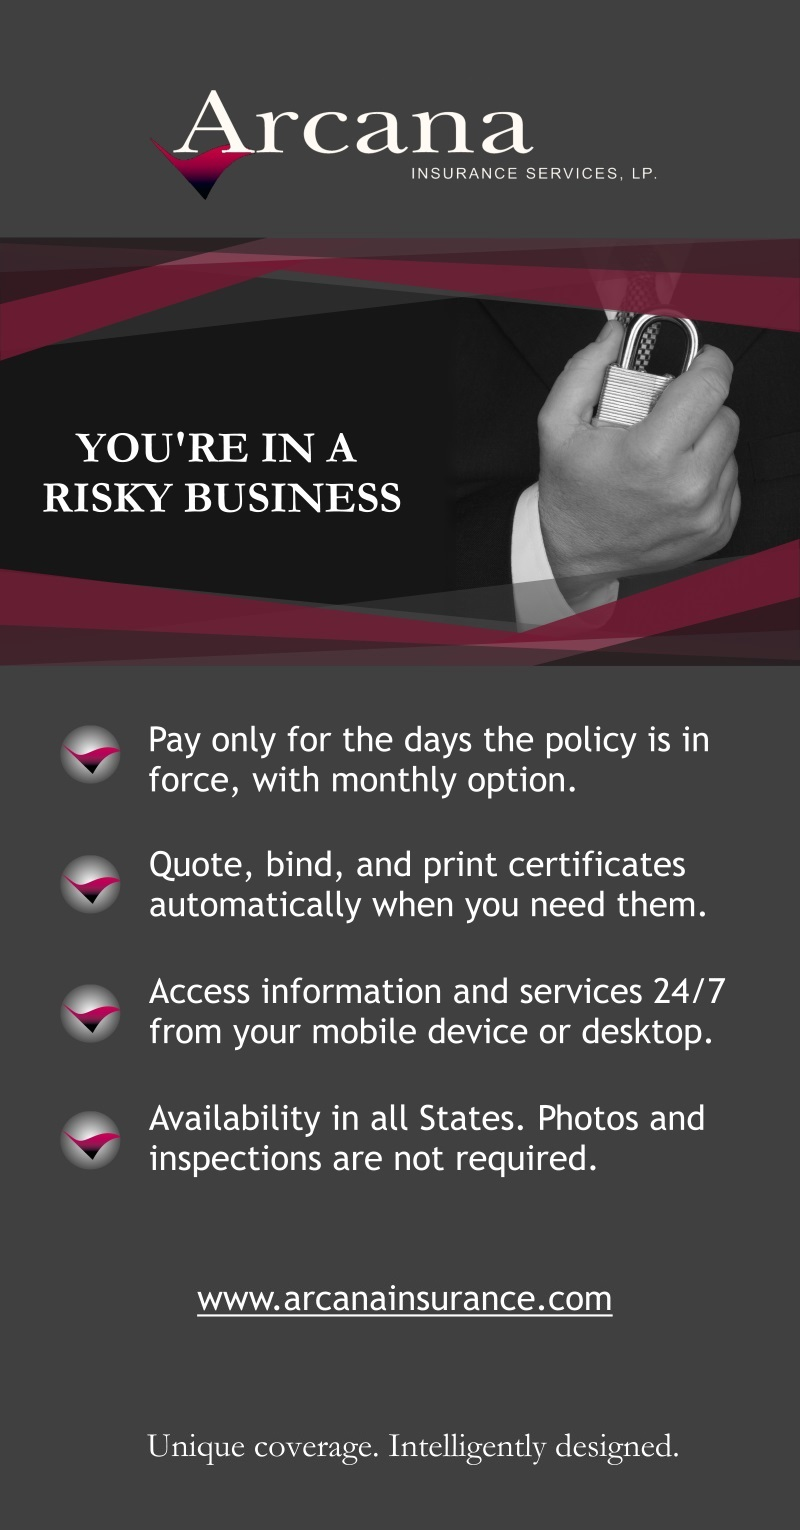 Arcana Insurance Services Training Property Managers Quote Bind Print Certificates Master Property Insurance